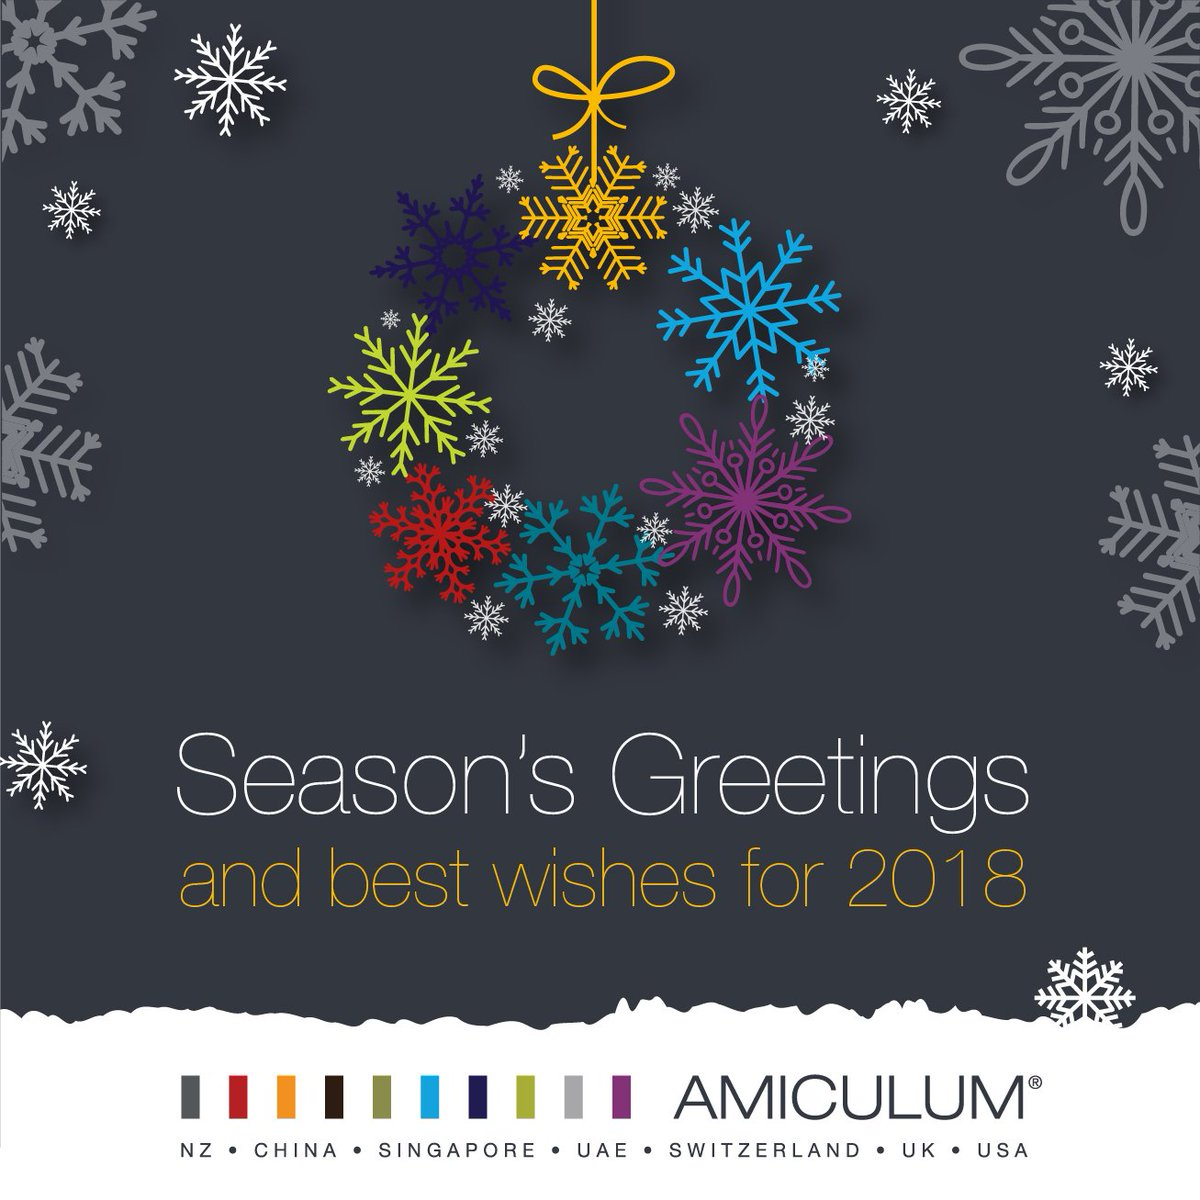 Amiculum On Twitter Seasons Greetings And Best Wishes For 2018 To